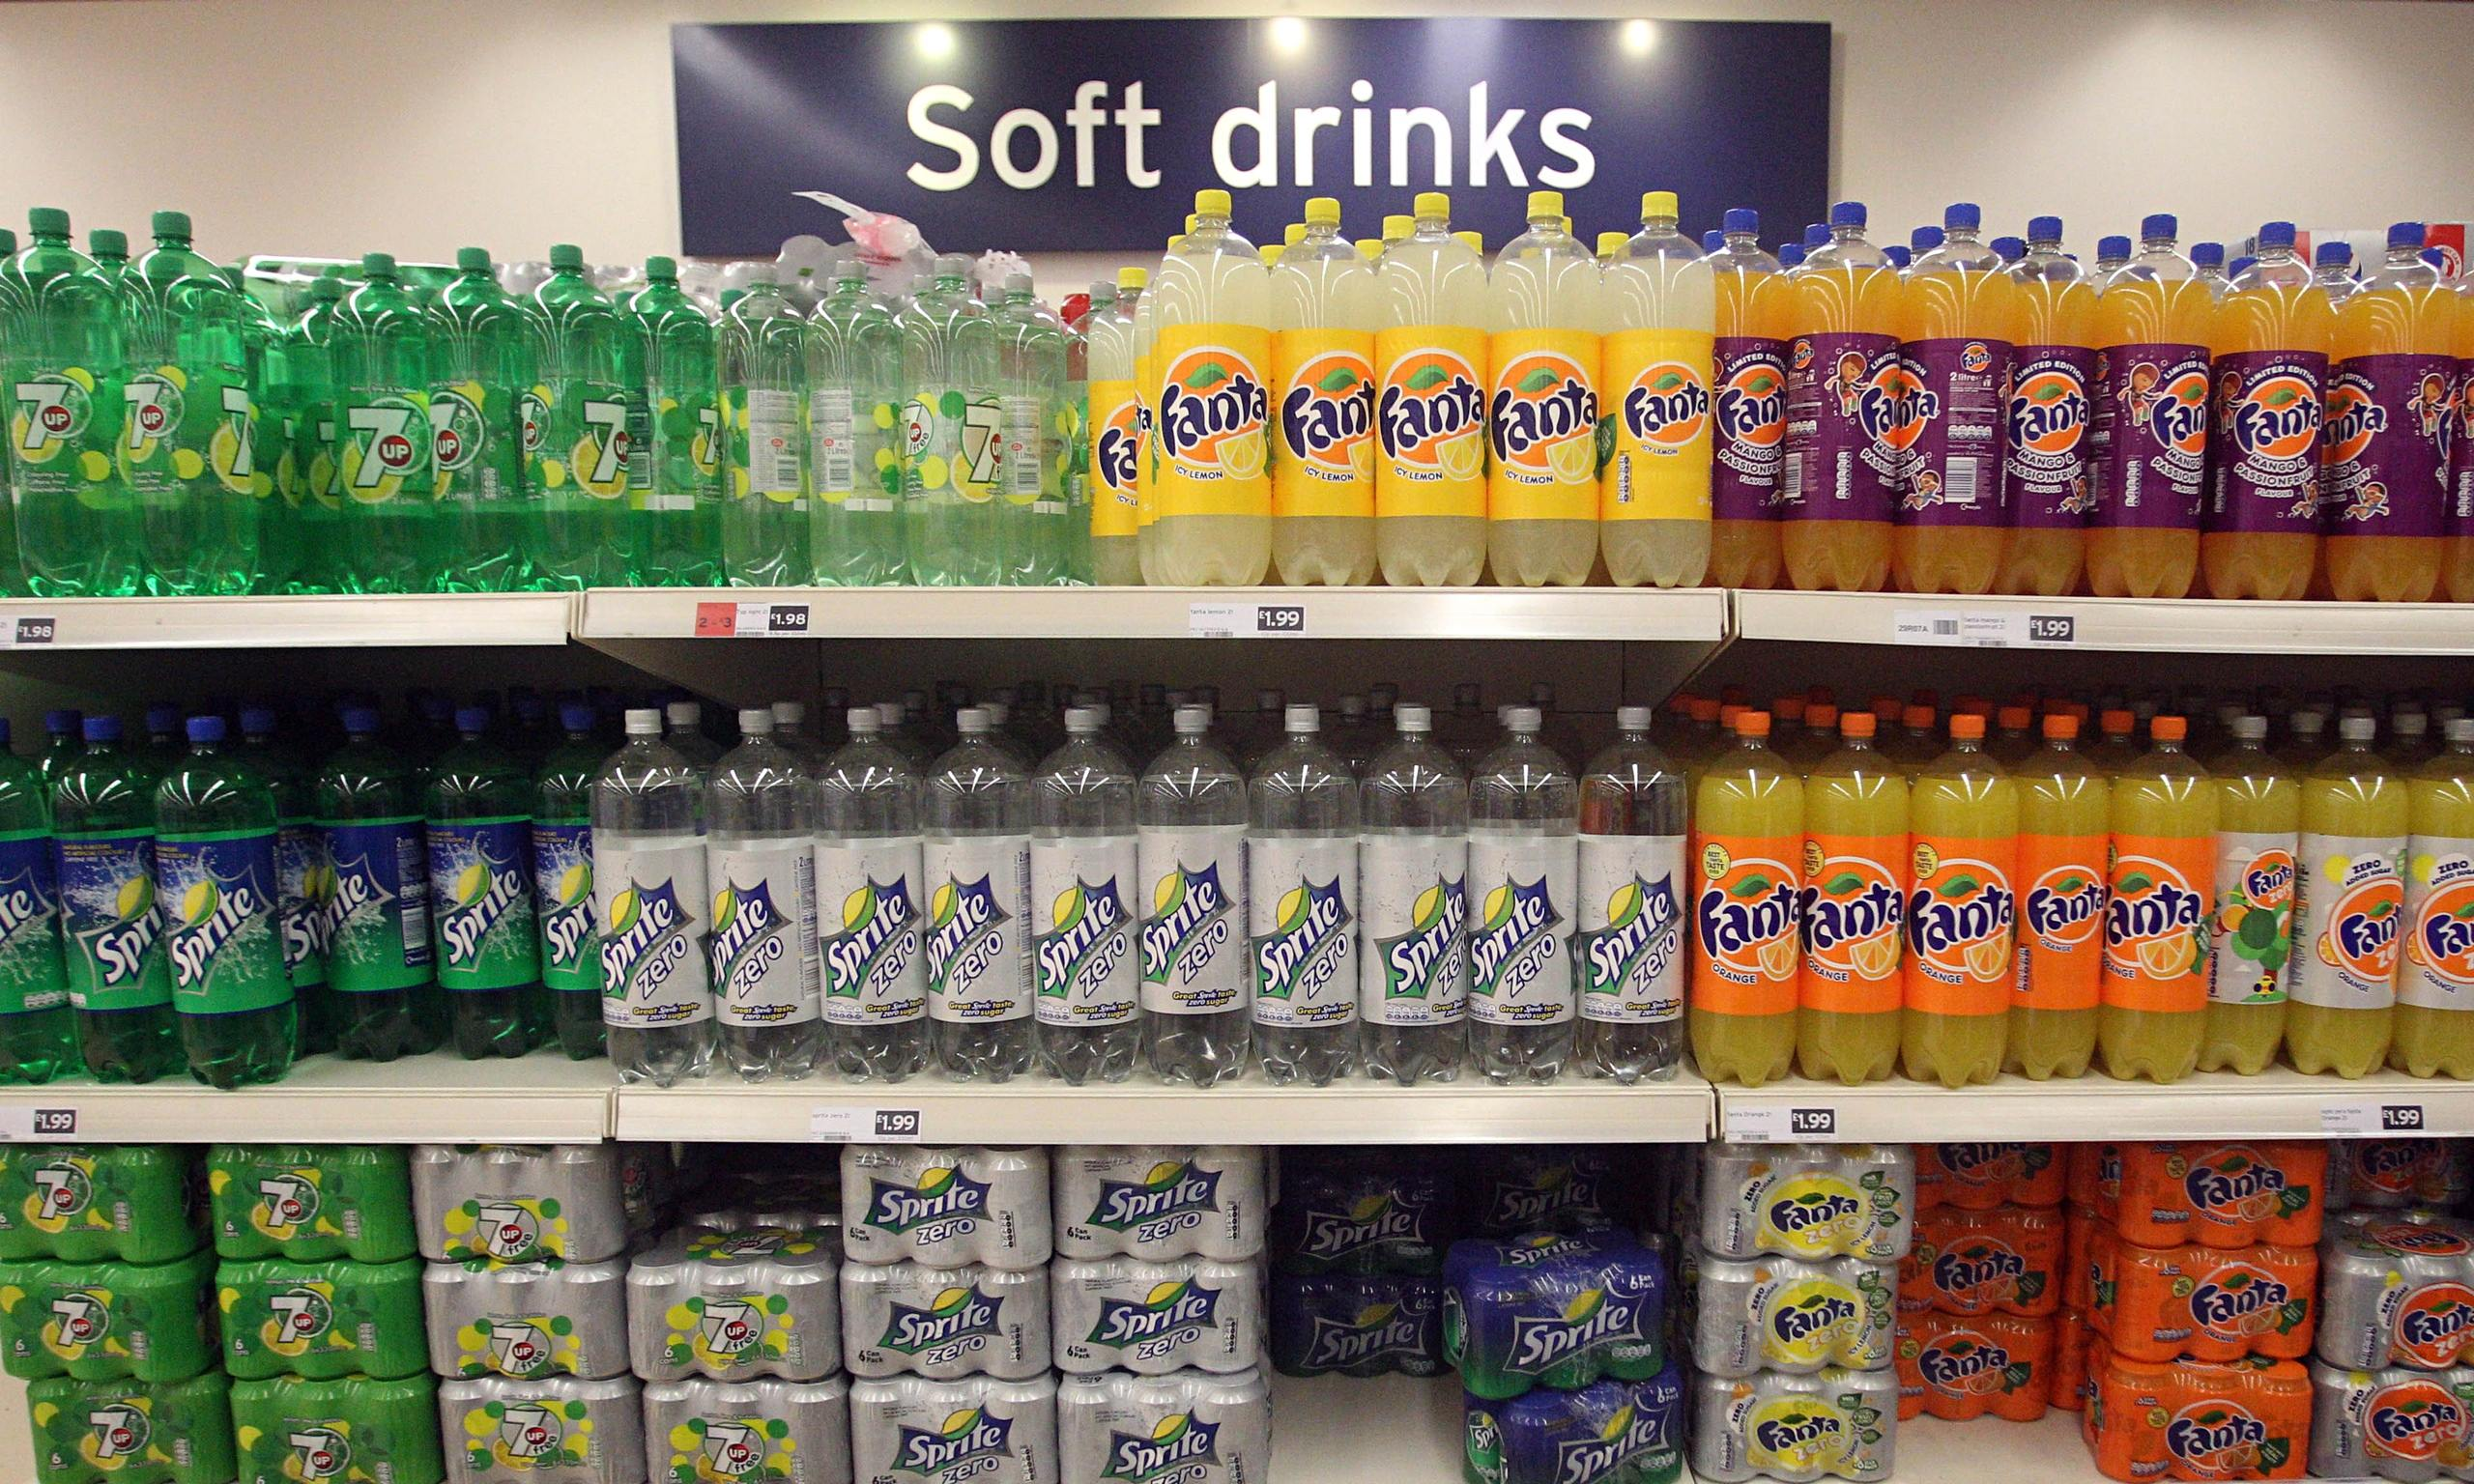 http://static.guim.co.uk/sys-images/Guardian/Pix/pictures/2014/6/26/1403797362208/Soft-drinks-014.jpg